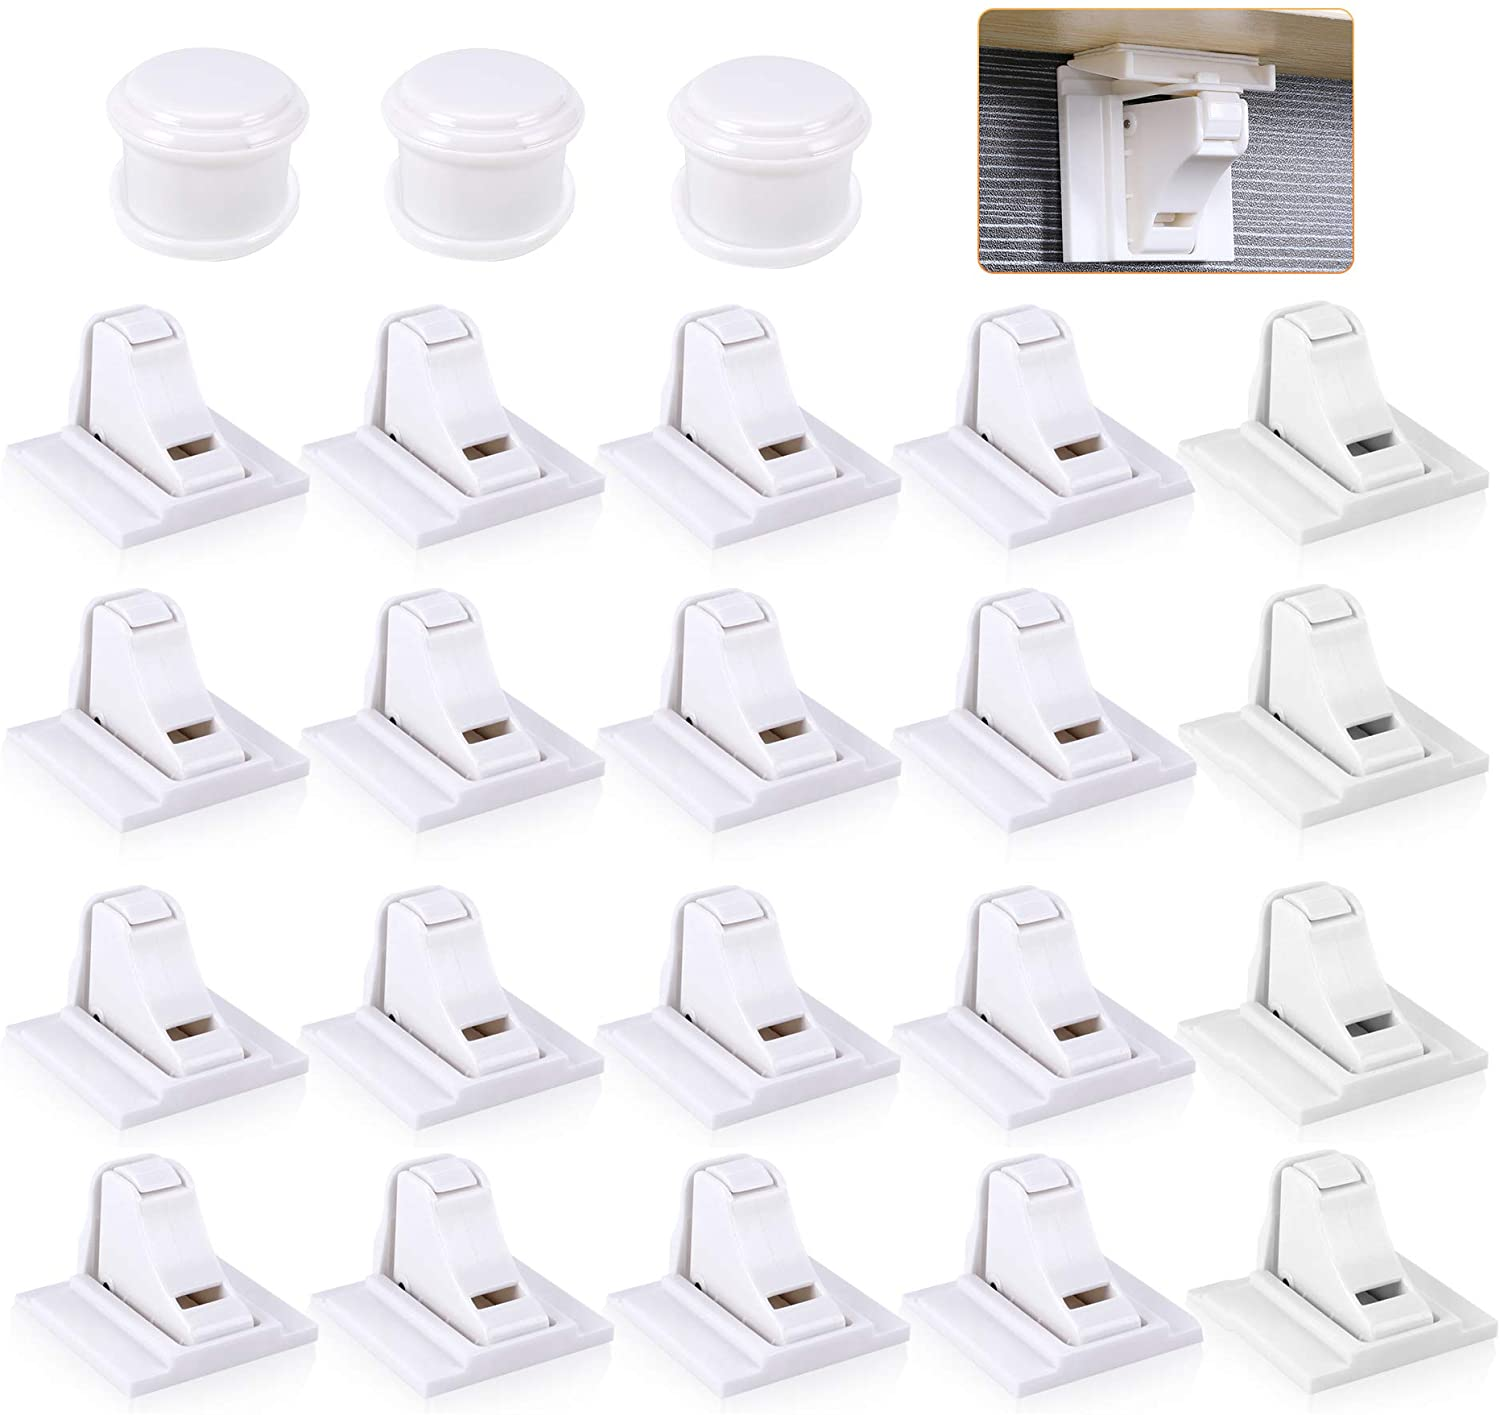 Magnetic Cabinet Locks Child Safety, Kitchen Baby Safety Proofing Cabinet & Drawer Locks, Safety Cupboard Locks for Protecting Your Kids & Toddlers (20 Locks & 3 Keys)